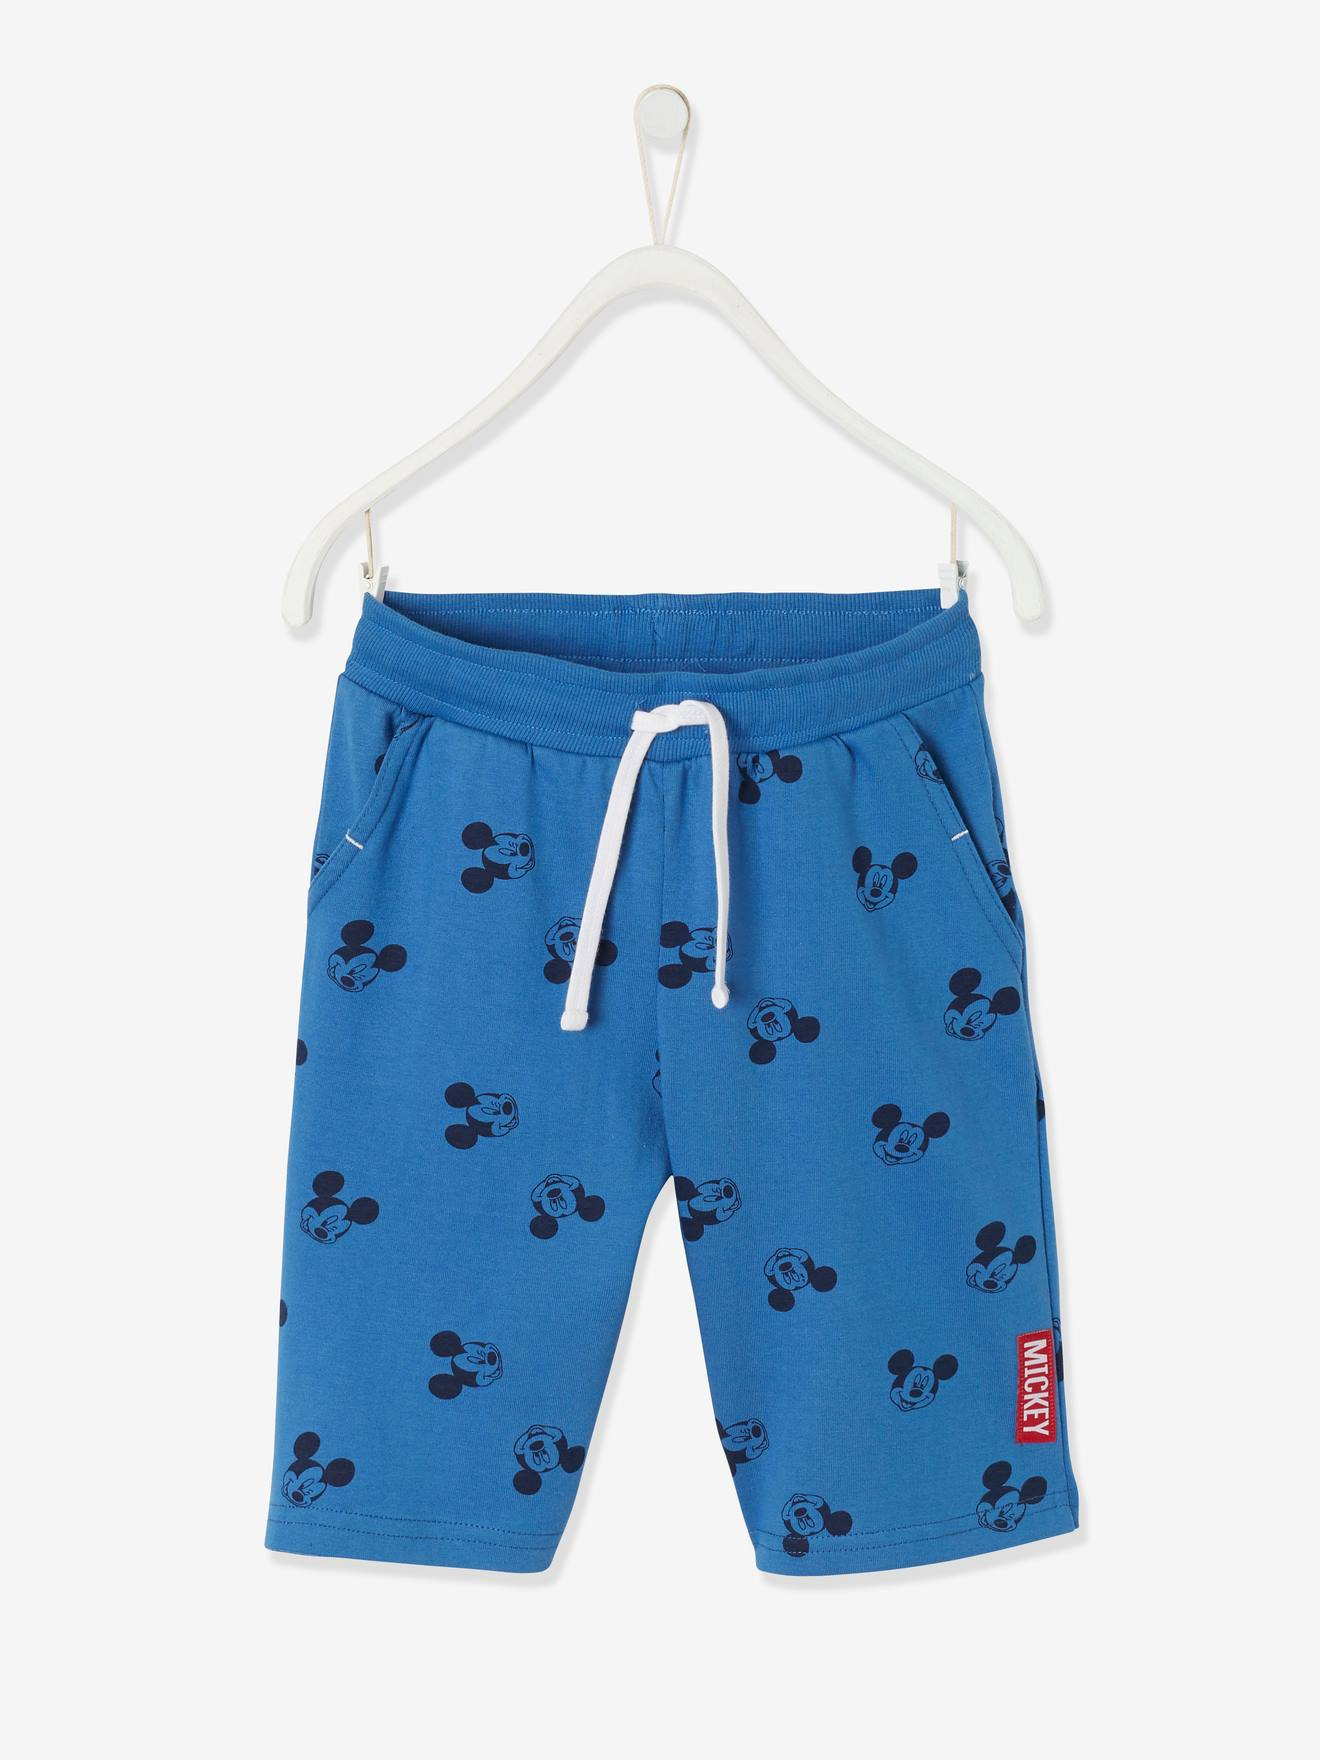 themed bedrooms for adults disney mickey mouse bedroom.htm bermuda shorts for boys  disney   mickey blue medium all over  bermuda shorts for boys  disney   mickey